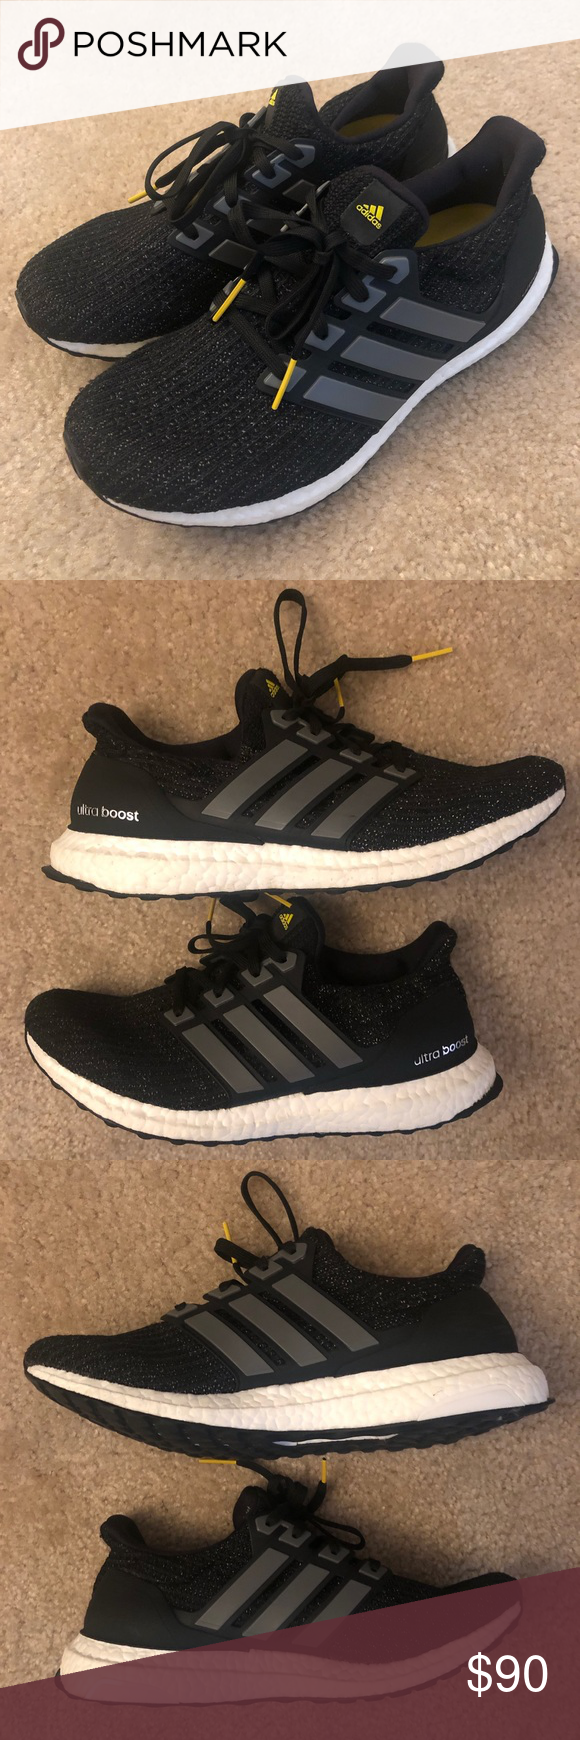 4c3024340c6 adidas Ultra Boost 4.0 LTD 3M 5th Anniversary Authentic without OG box US  Men s 8.5 Condition